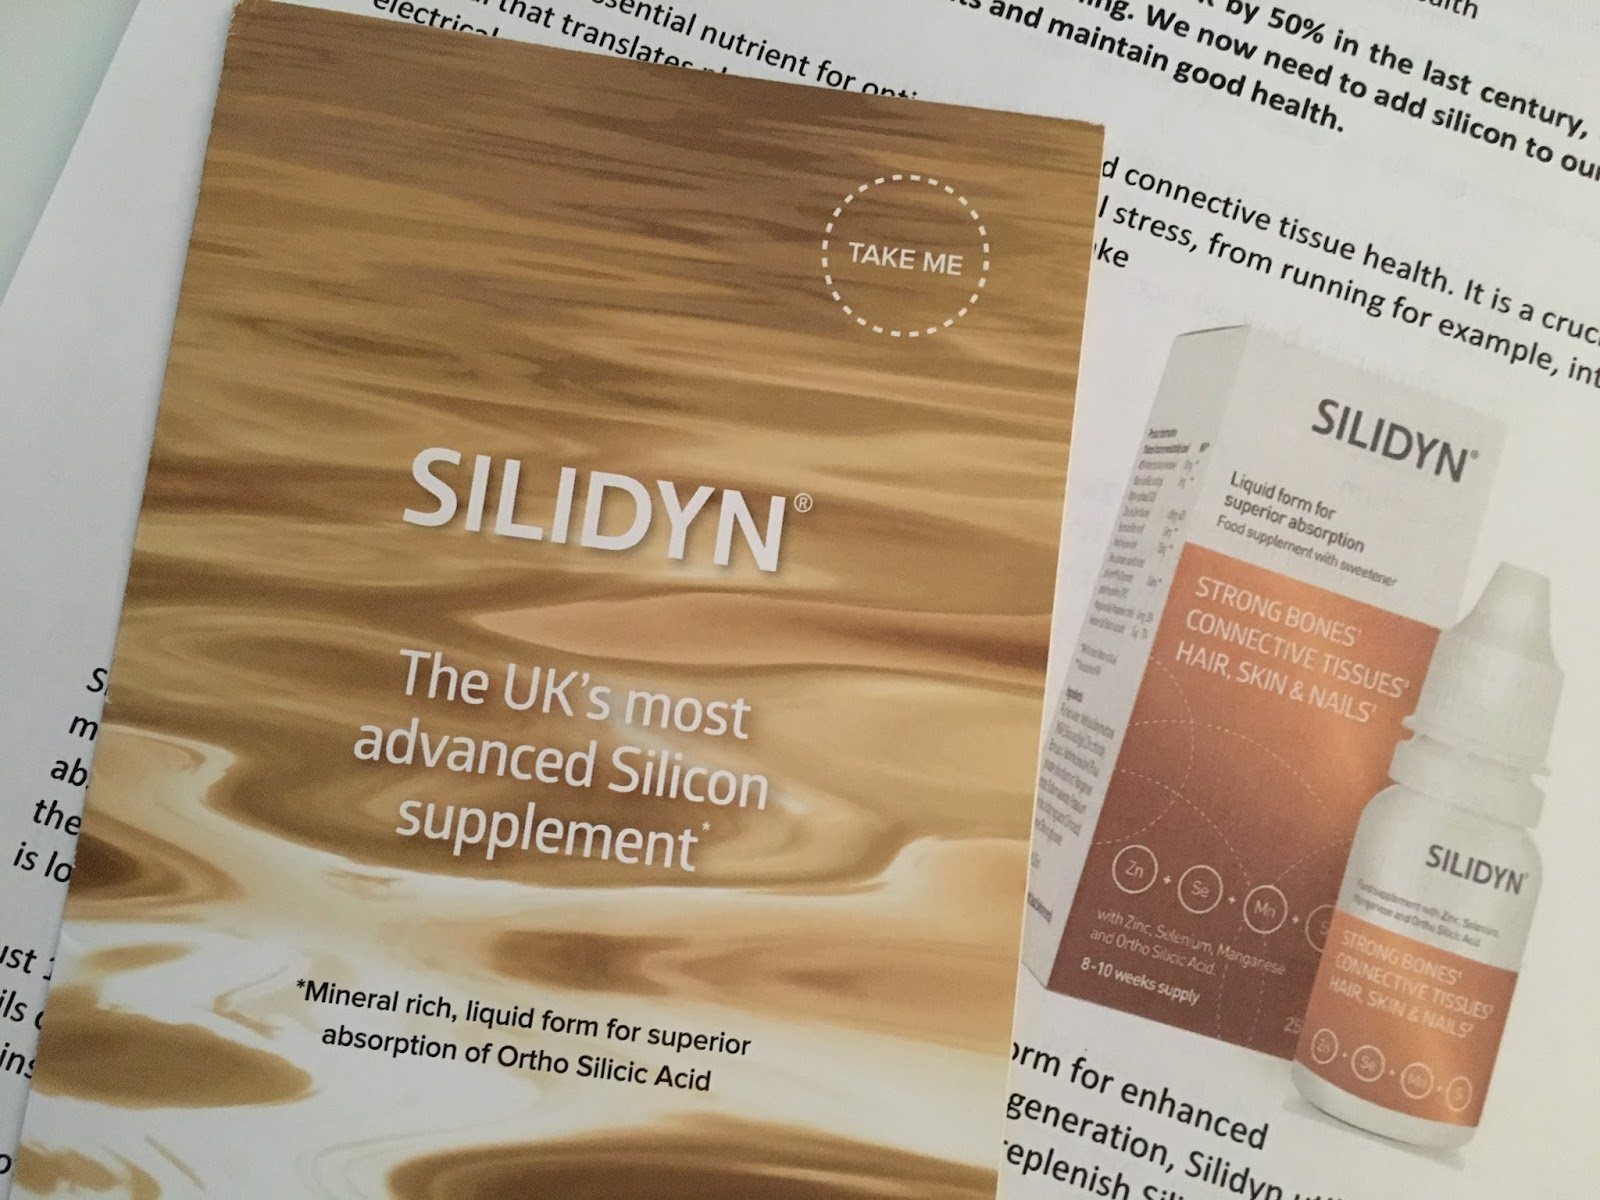 Silidyn review silicon supplement rio health lifestyle Priceless Life of Mine Over 40 lifestyle blog